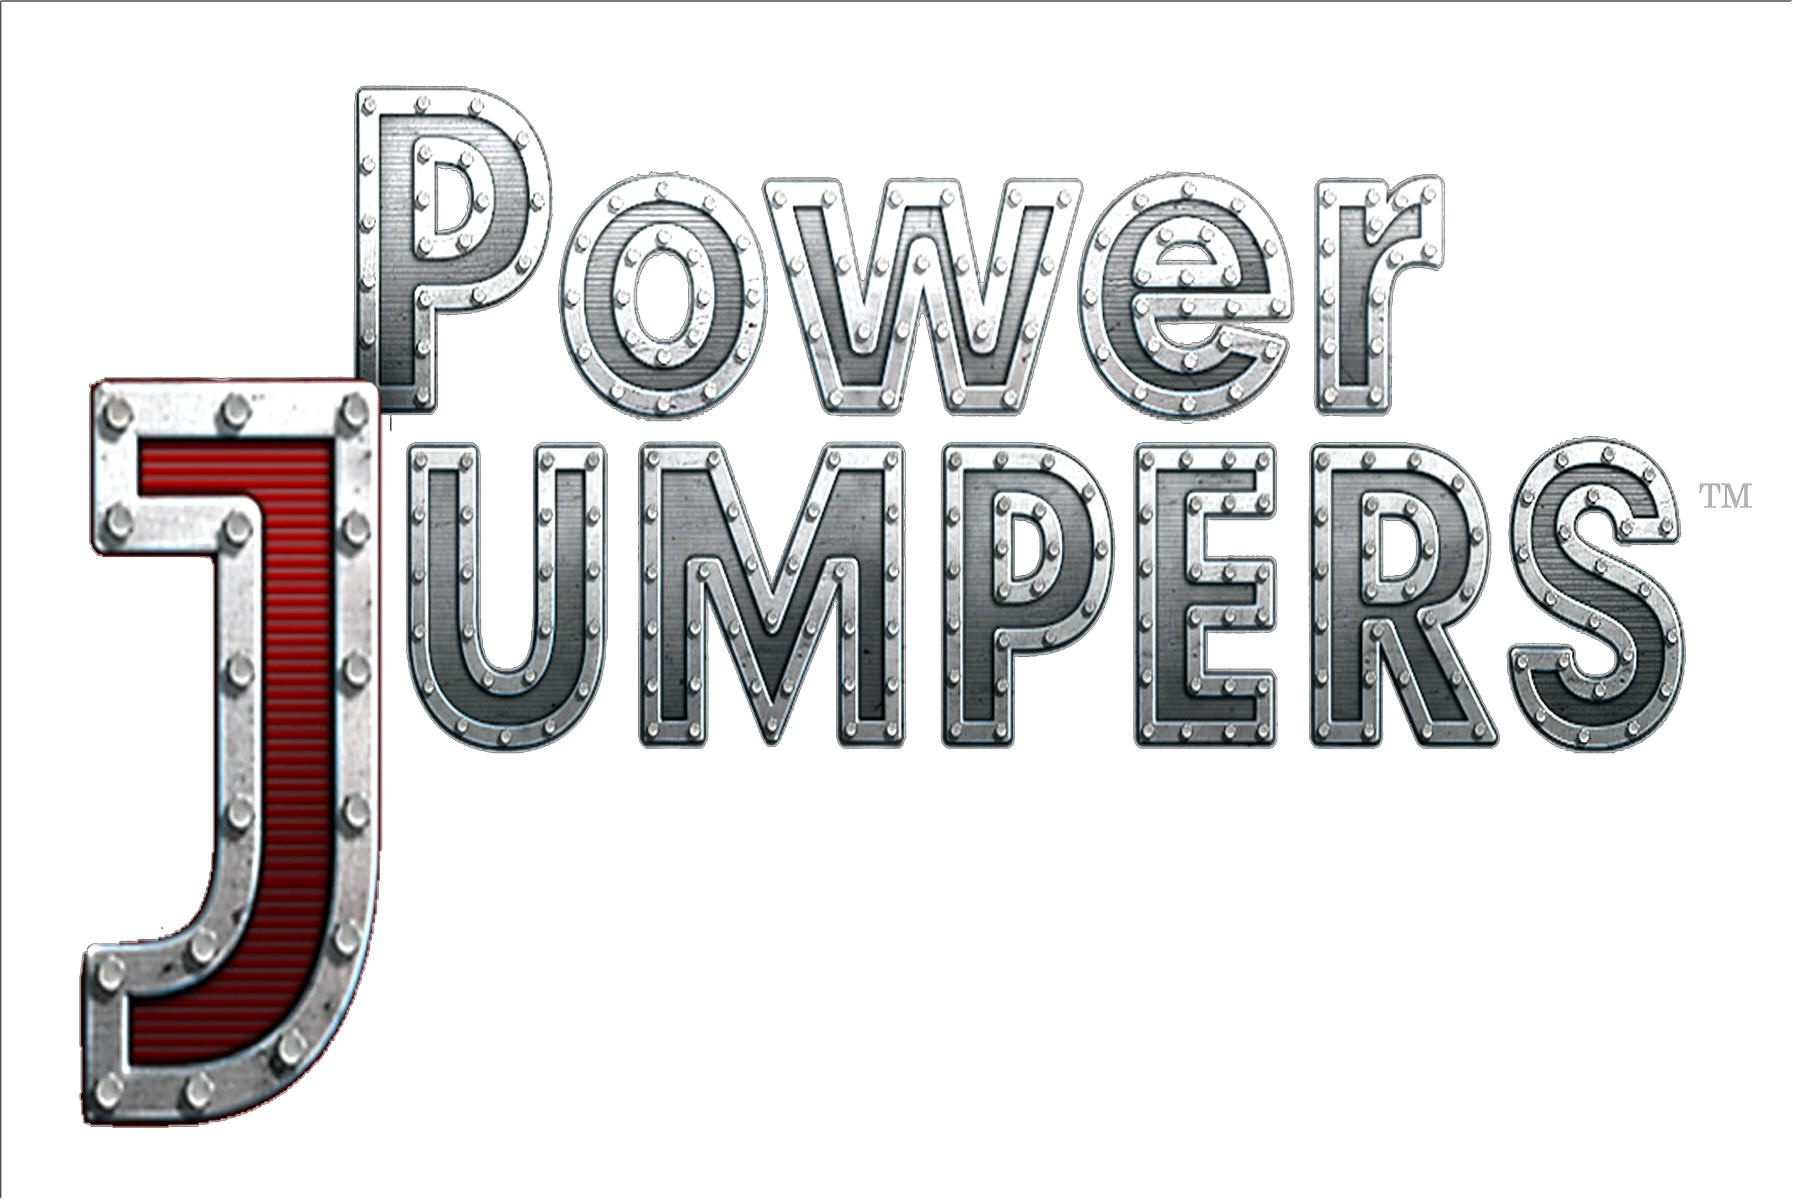 Power Jumpers, jump boots, rebound exercise boots, mini trampolines, lauren brenner, jump shoes, power jumper boots for aerobics